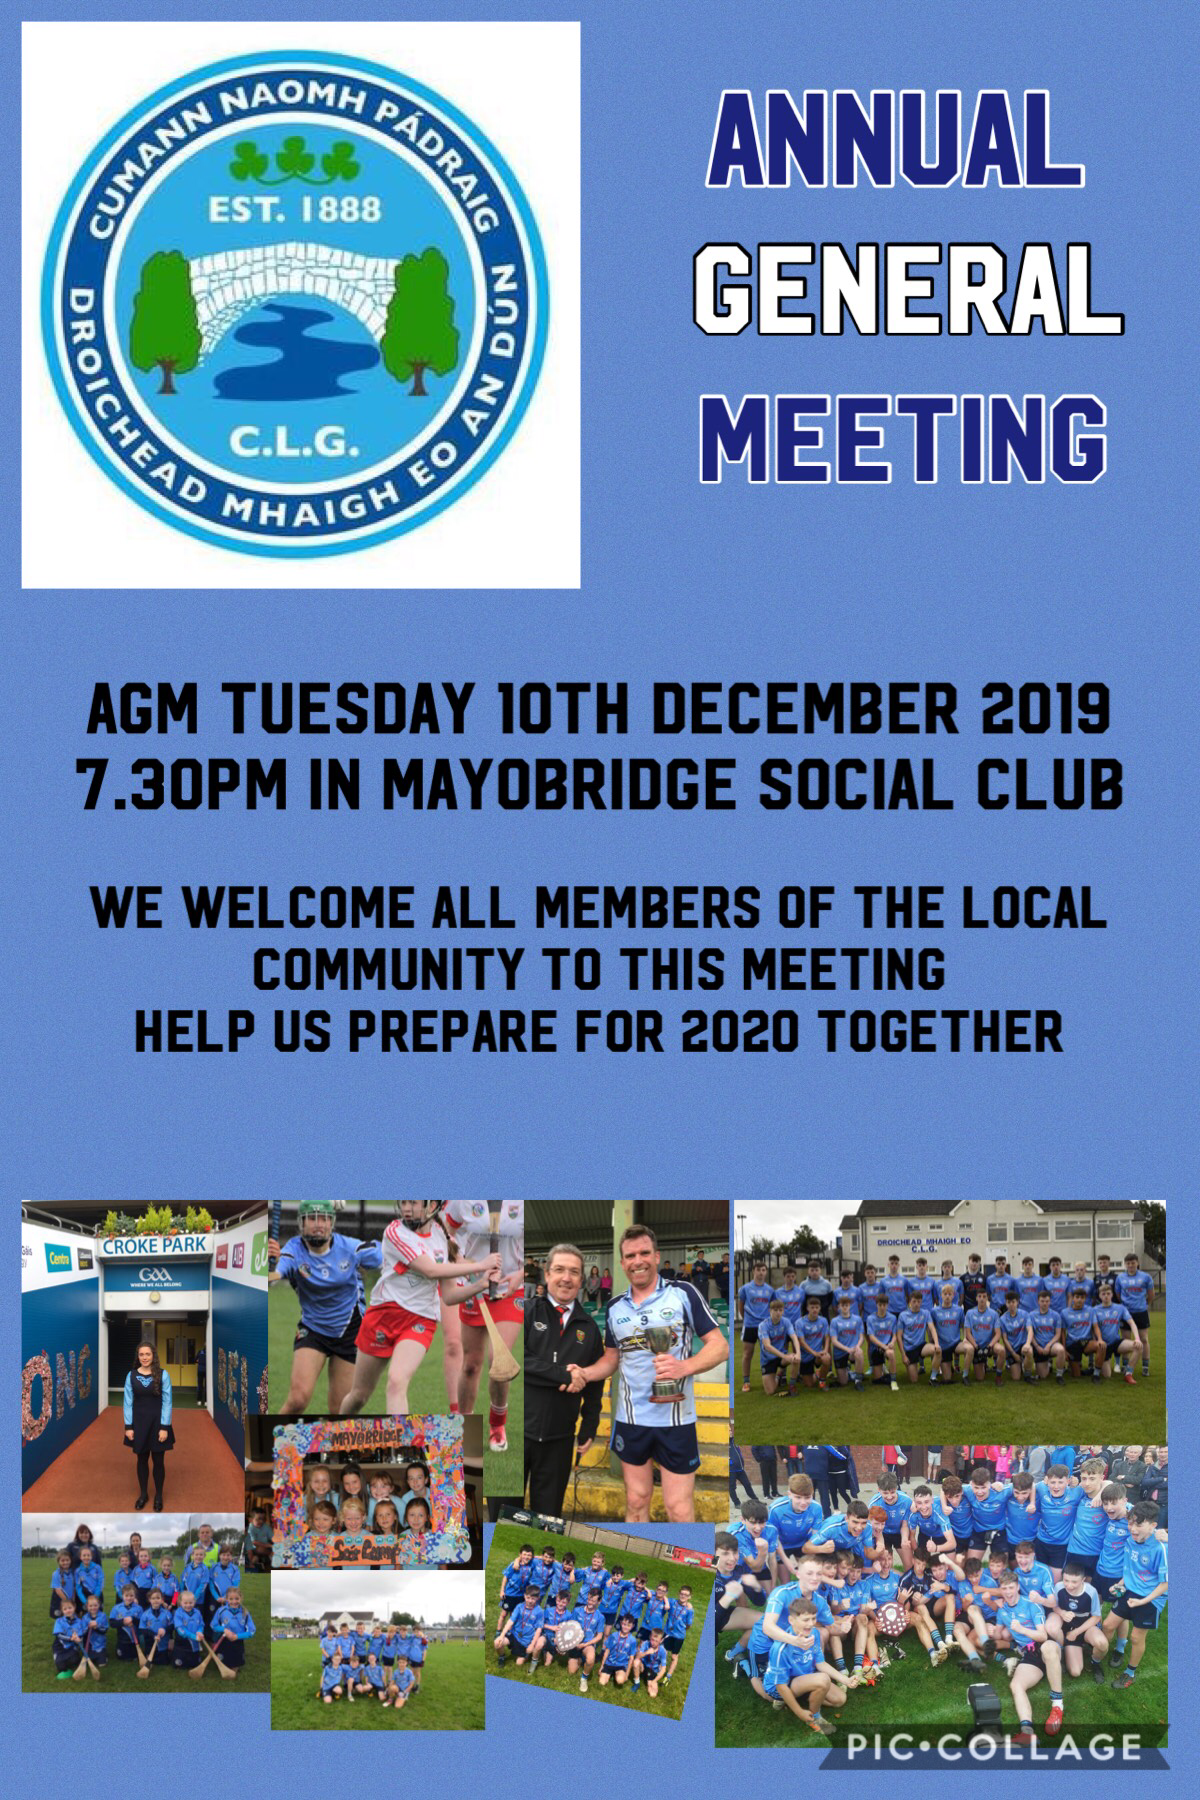 ANNUAL GENERAL MEETING – NOMINATION FORMS AND CLUB AGM MANUAL